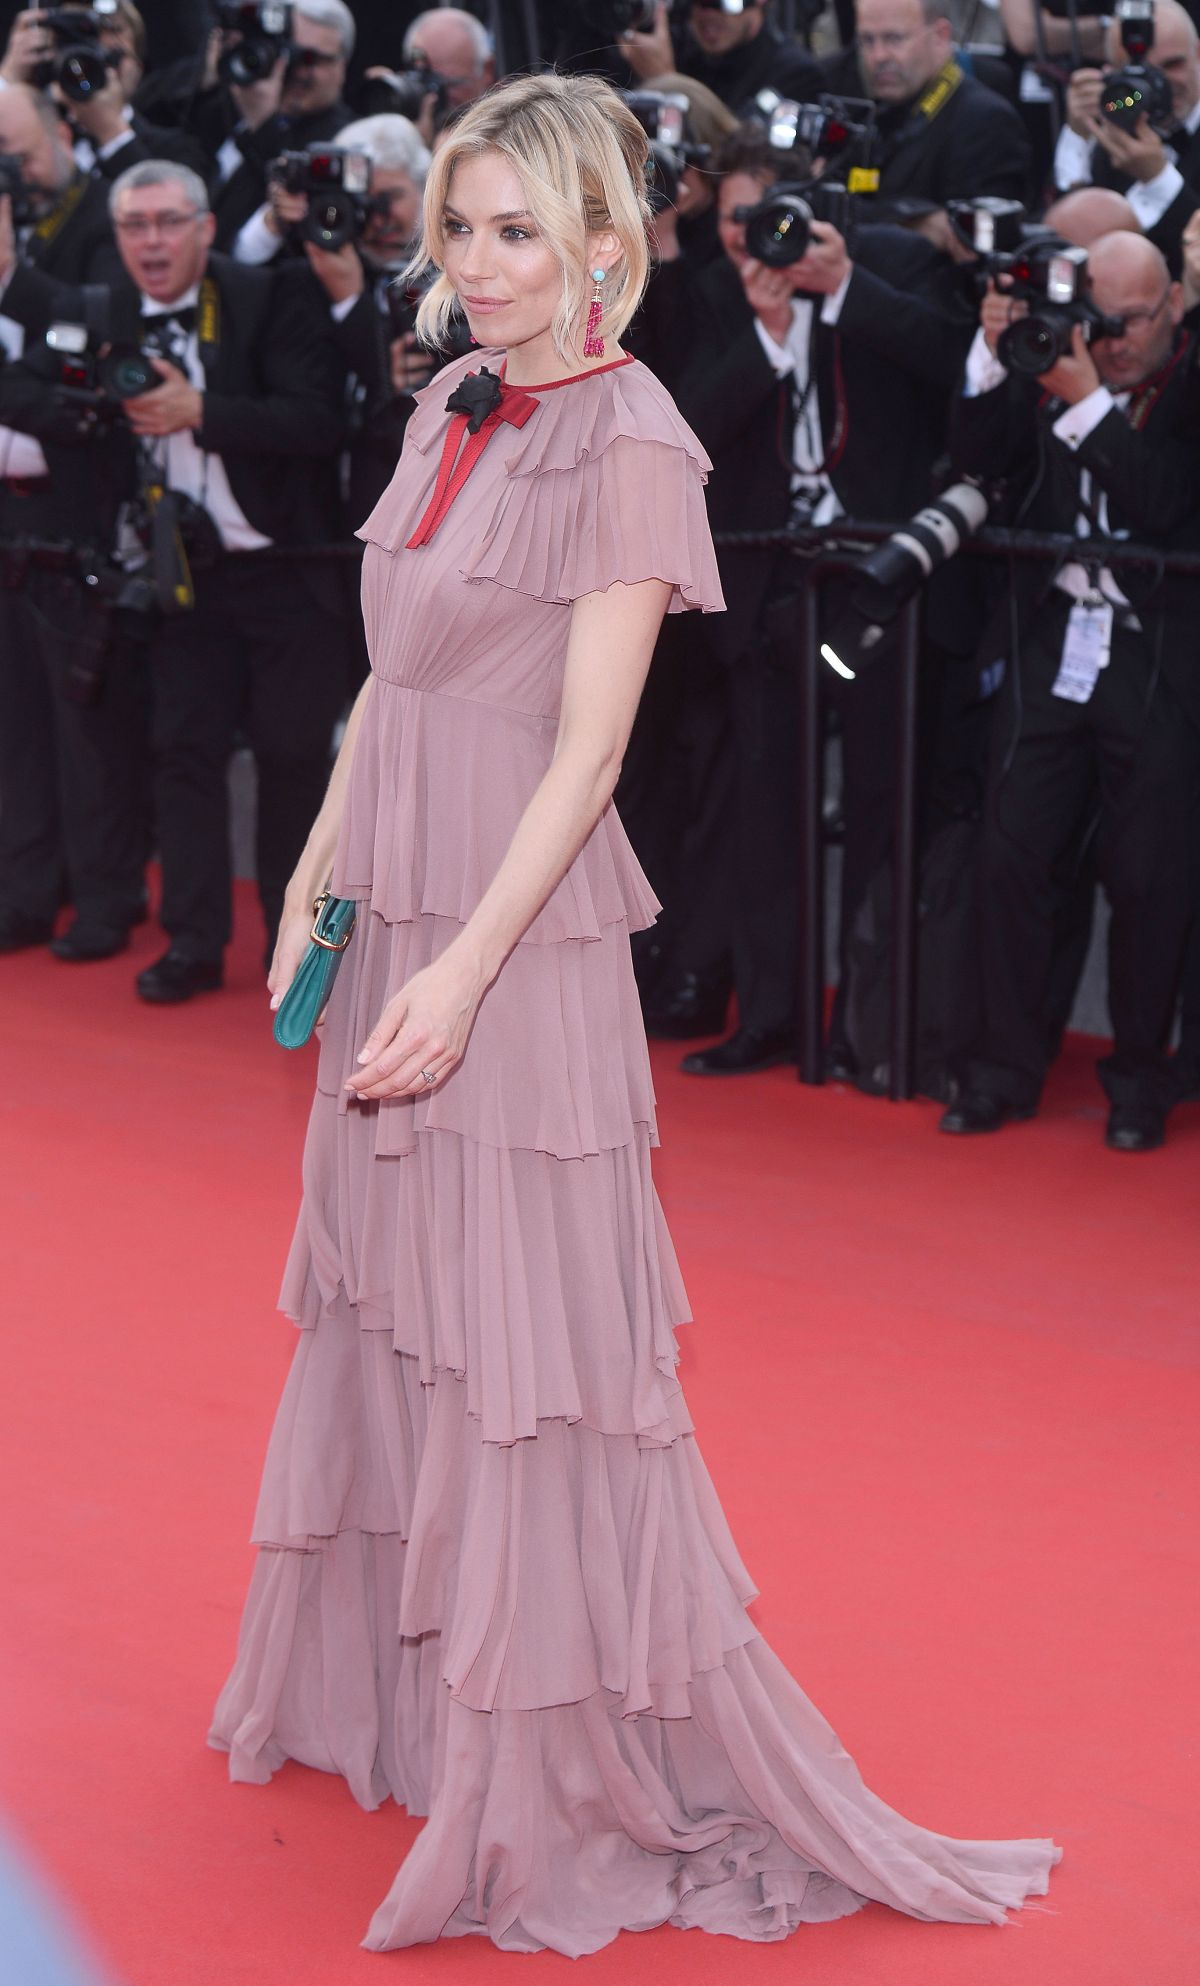 sienna-miller- in-gucci-at-macbeth-premiere-at-cannes-film-festival_